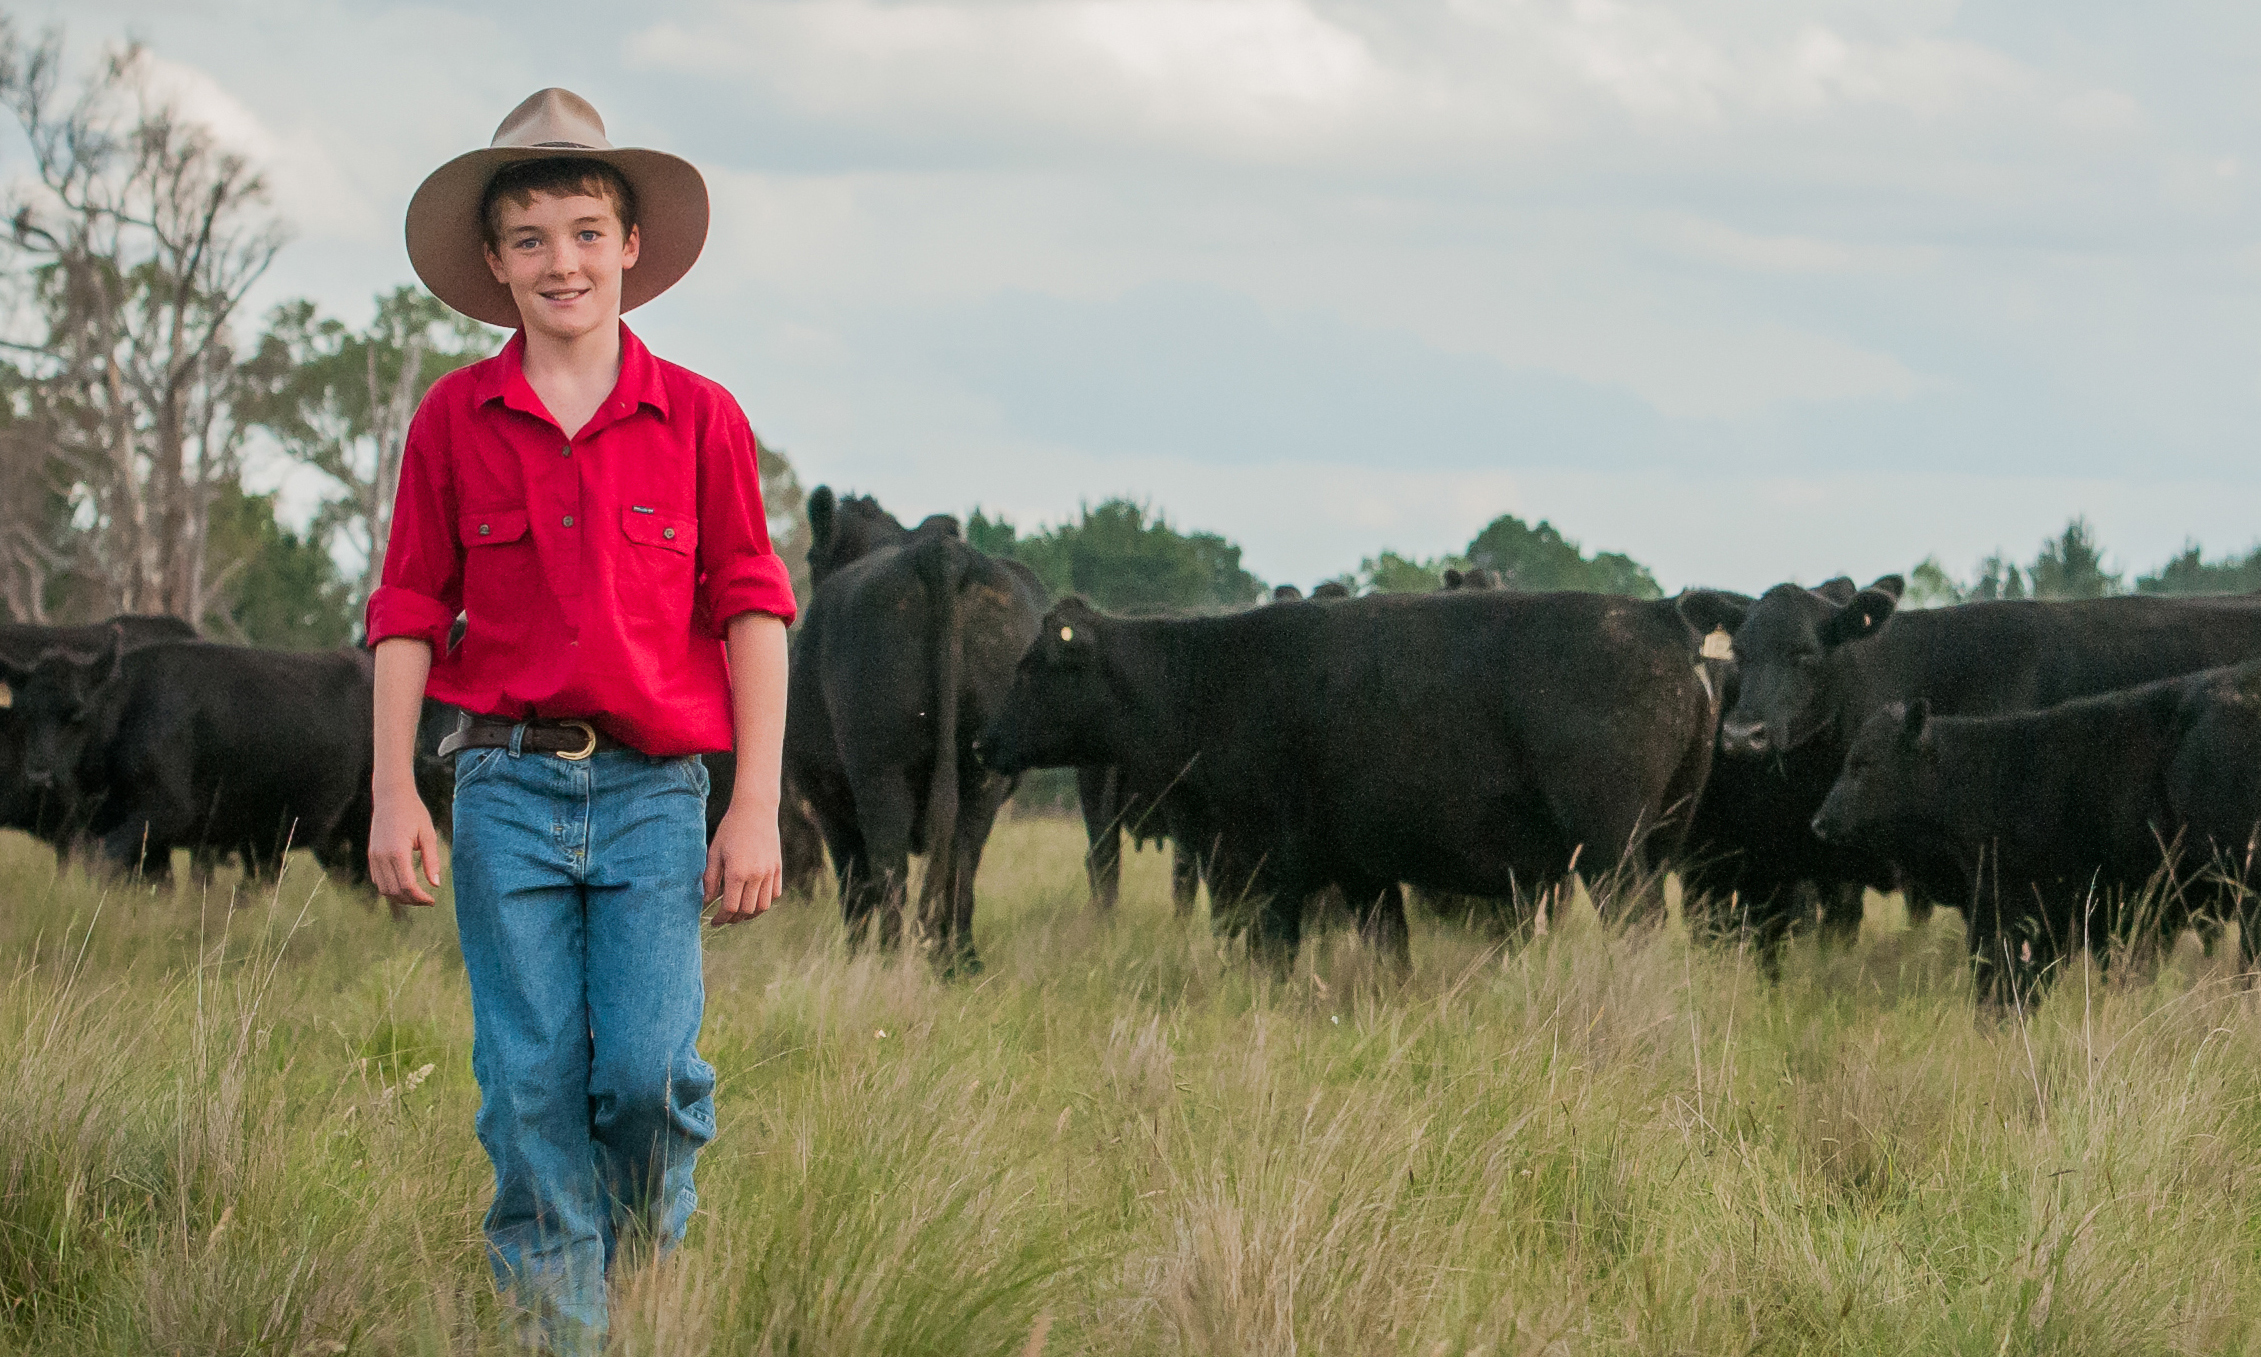 A boy walking through a paddock with cattle in the background